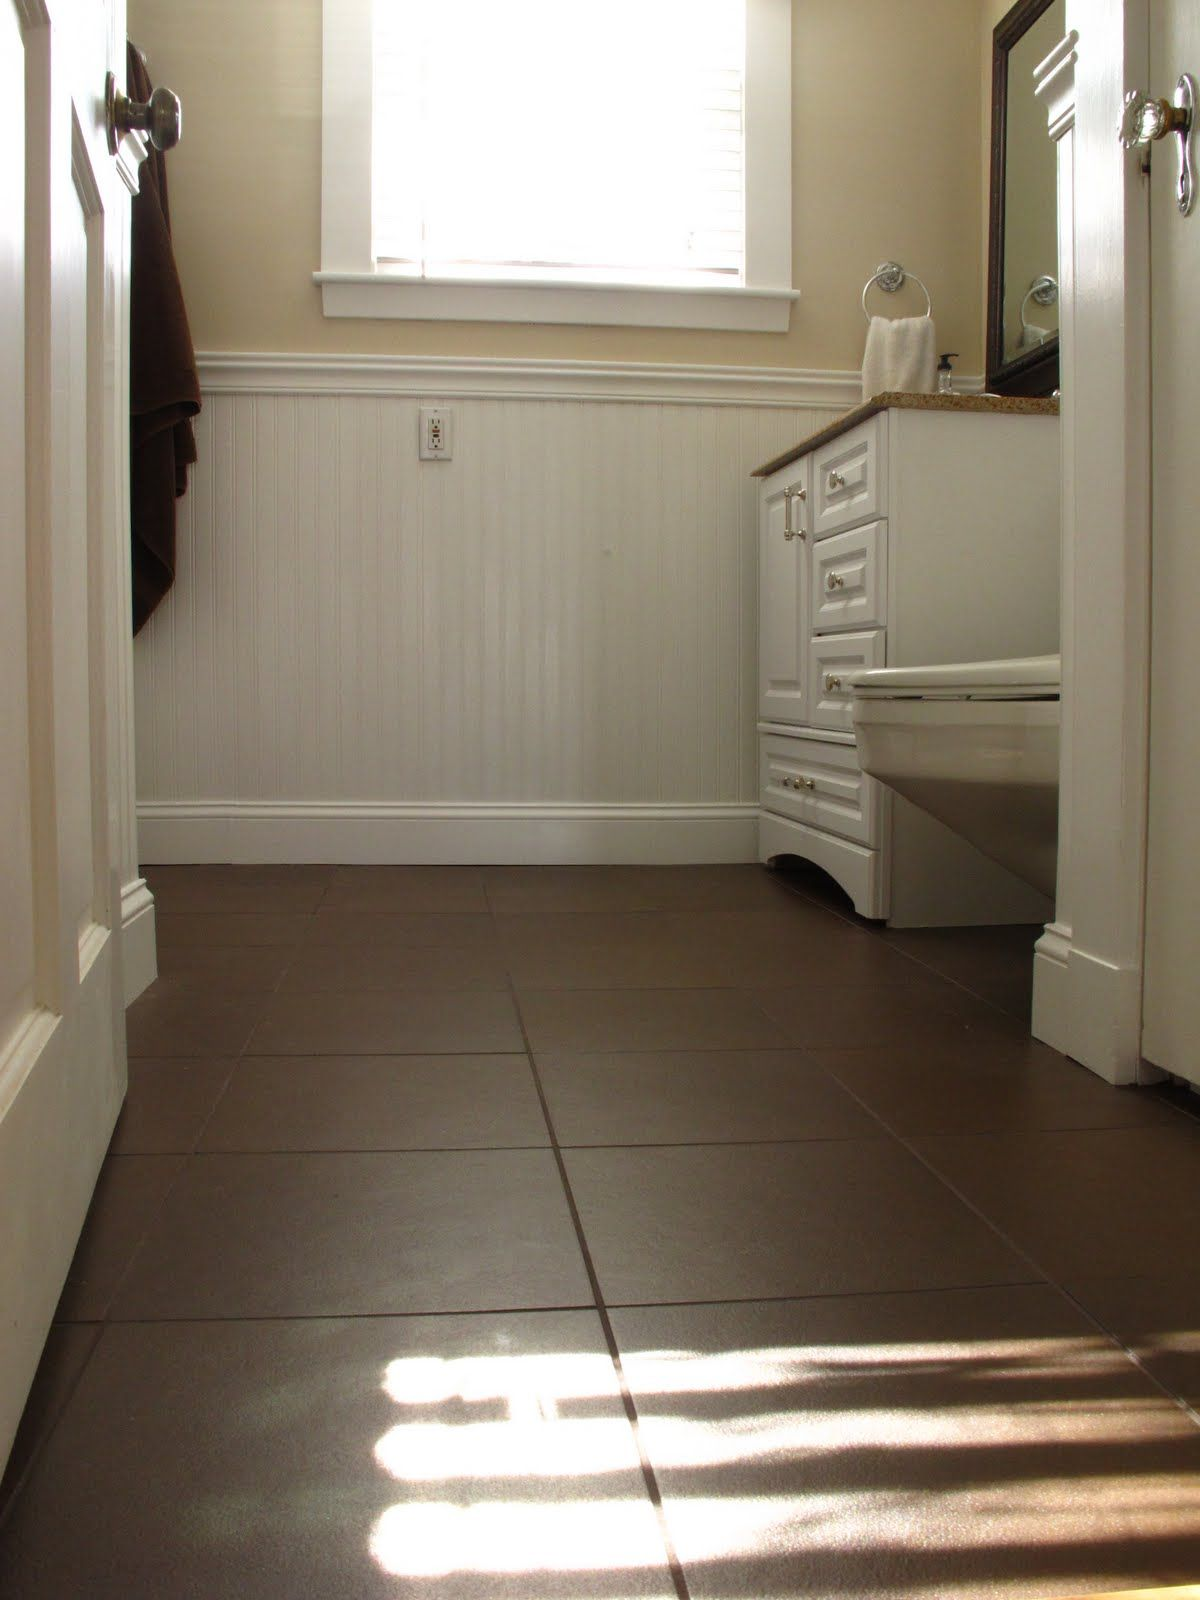 Fliesen Bad Braun: Dark Brown Tile In Bathroom Floor. White Subway Tile In